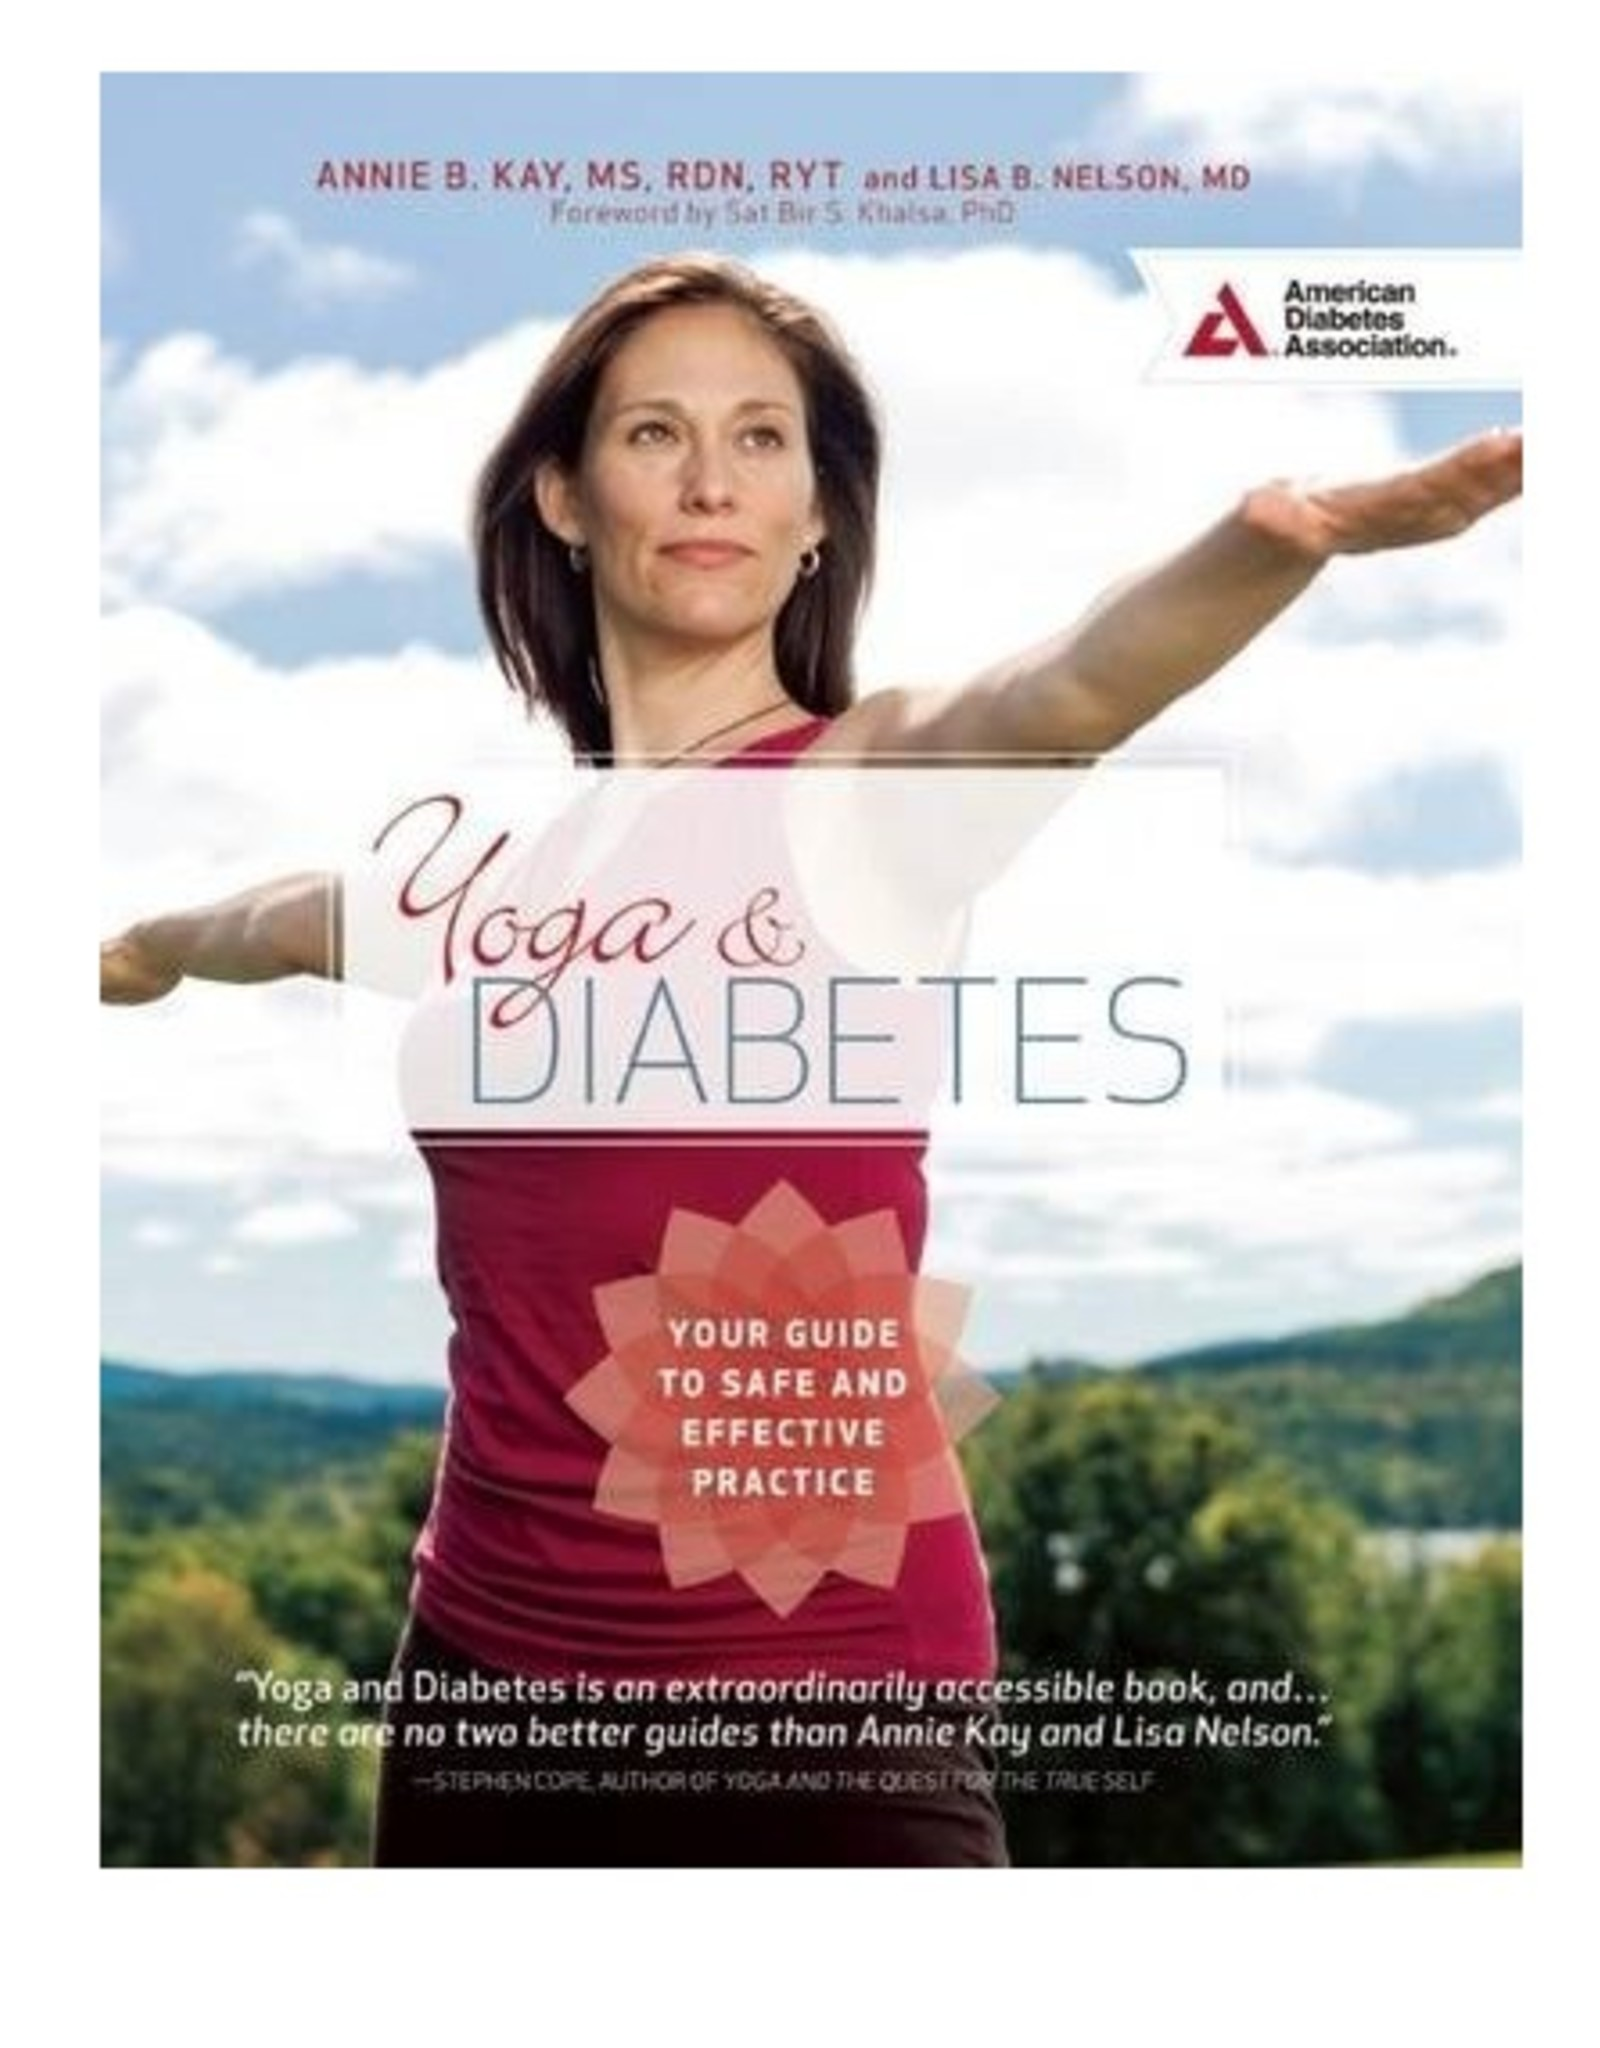 Yoga & Diabetes: Kay and Nelson